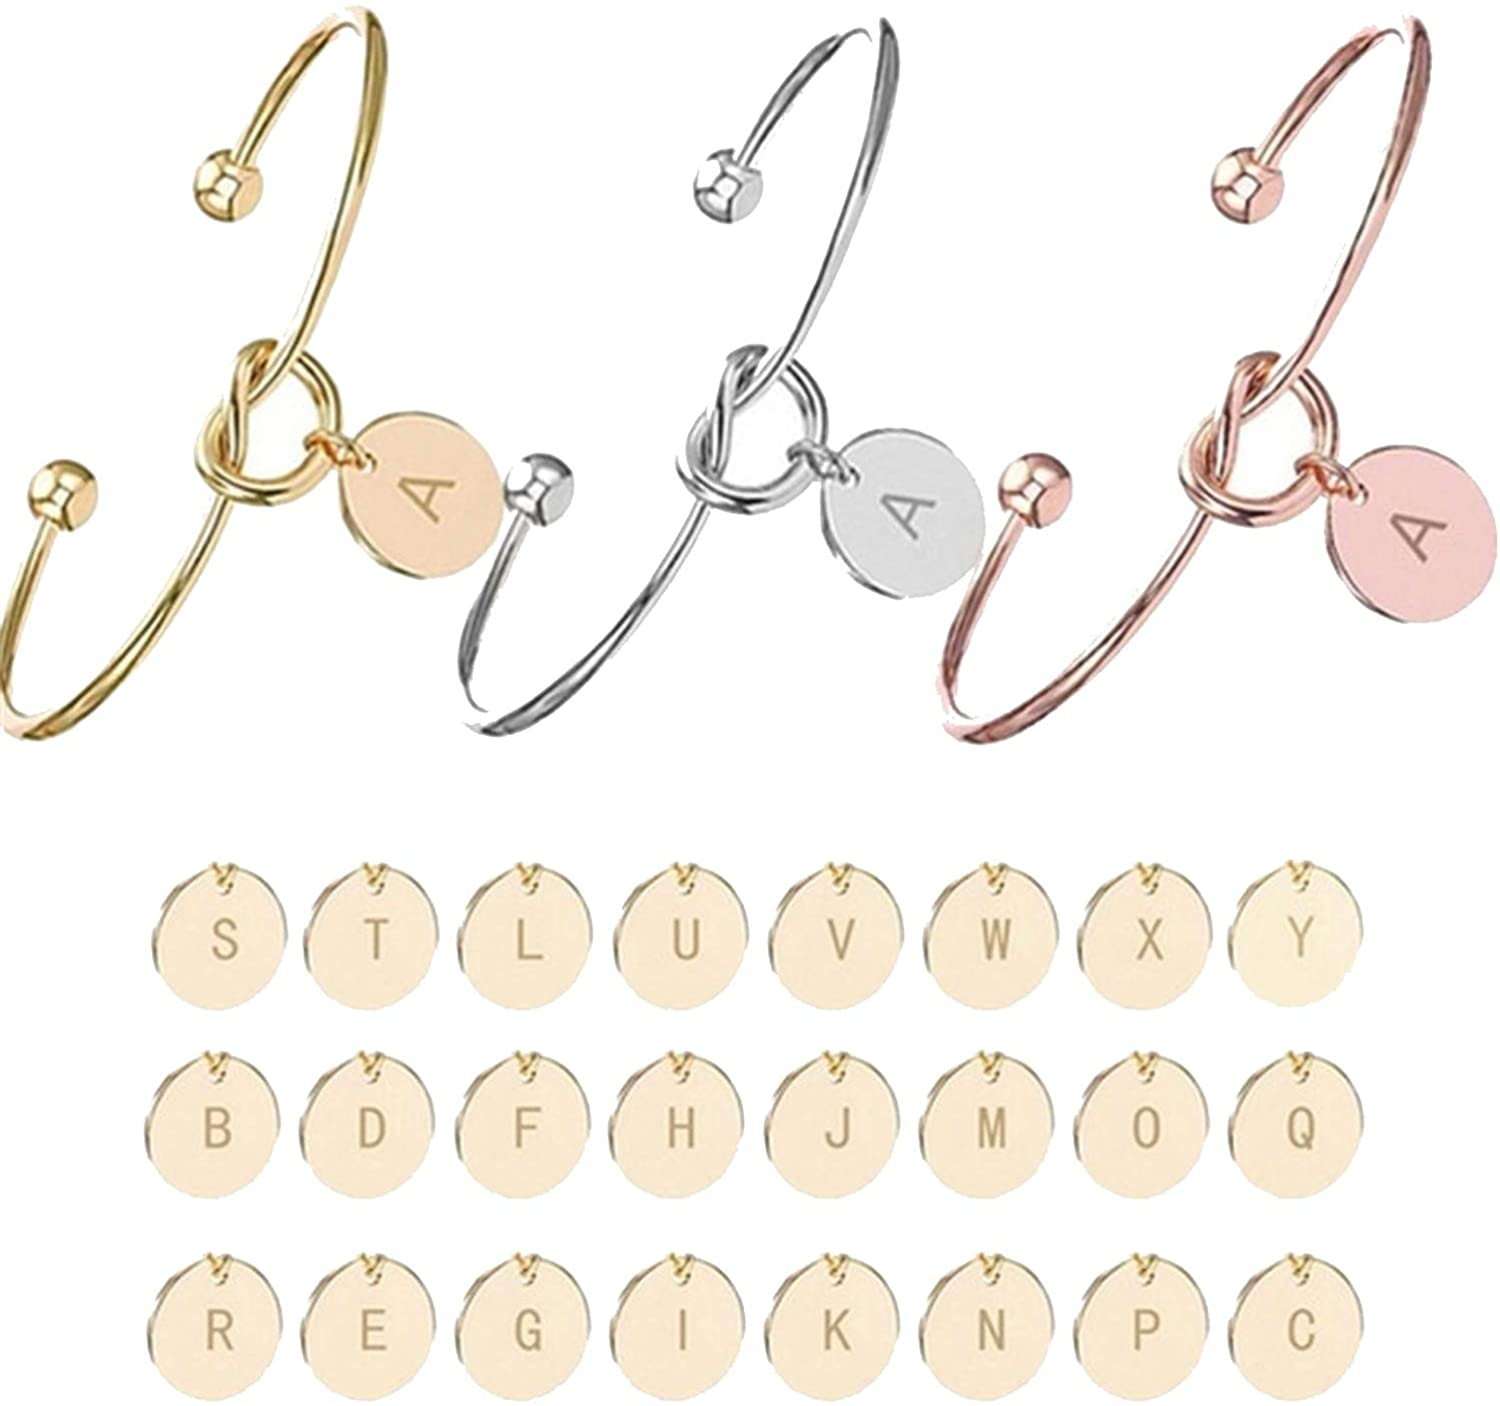 Personalized Knot Initial Bracelets Bangles A Z 26 Letters Initial Charm Love Bangle for Women Jewelry Pulseiras Gift,M,silver